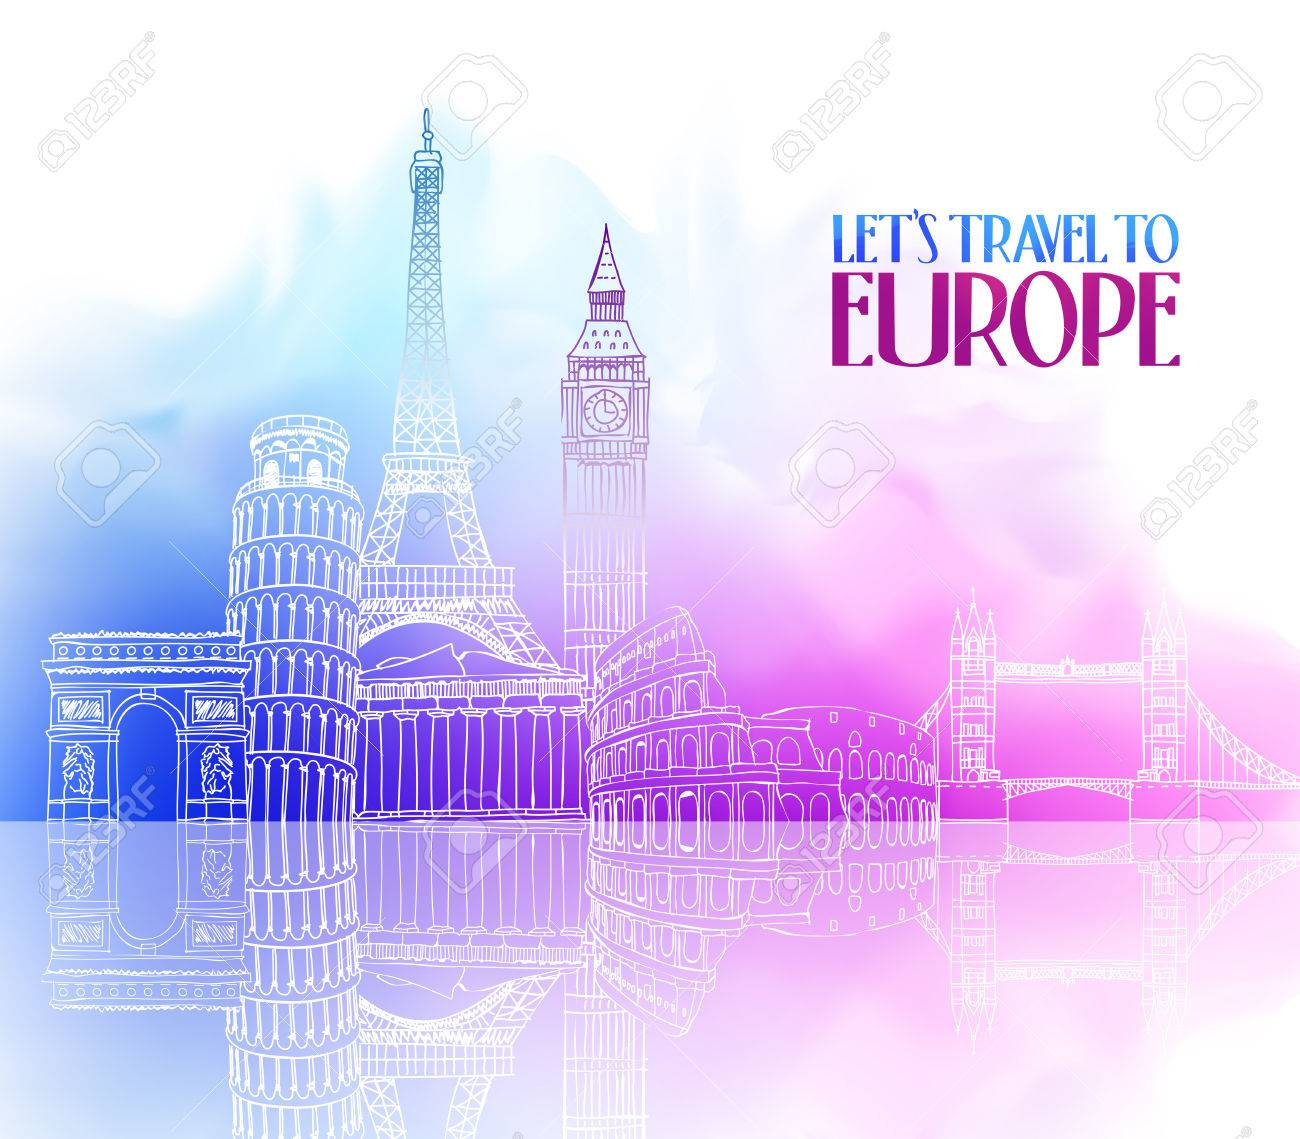 Travel Europe Hand Drawing with Famous Landmarks and Places in Colorful Watercolor Background with Reflection. Vector Illustration - 48820331